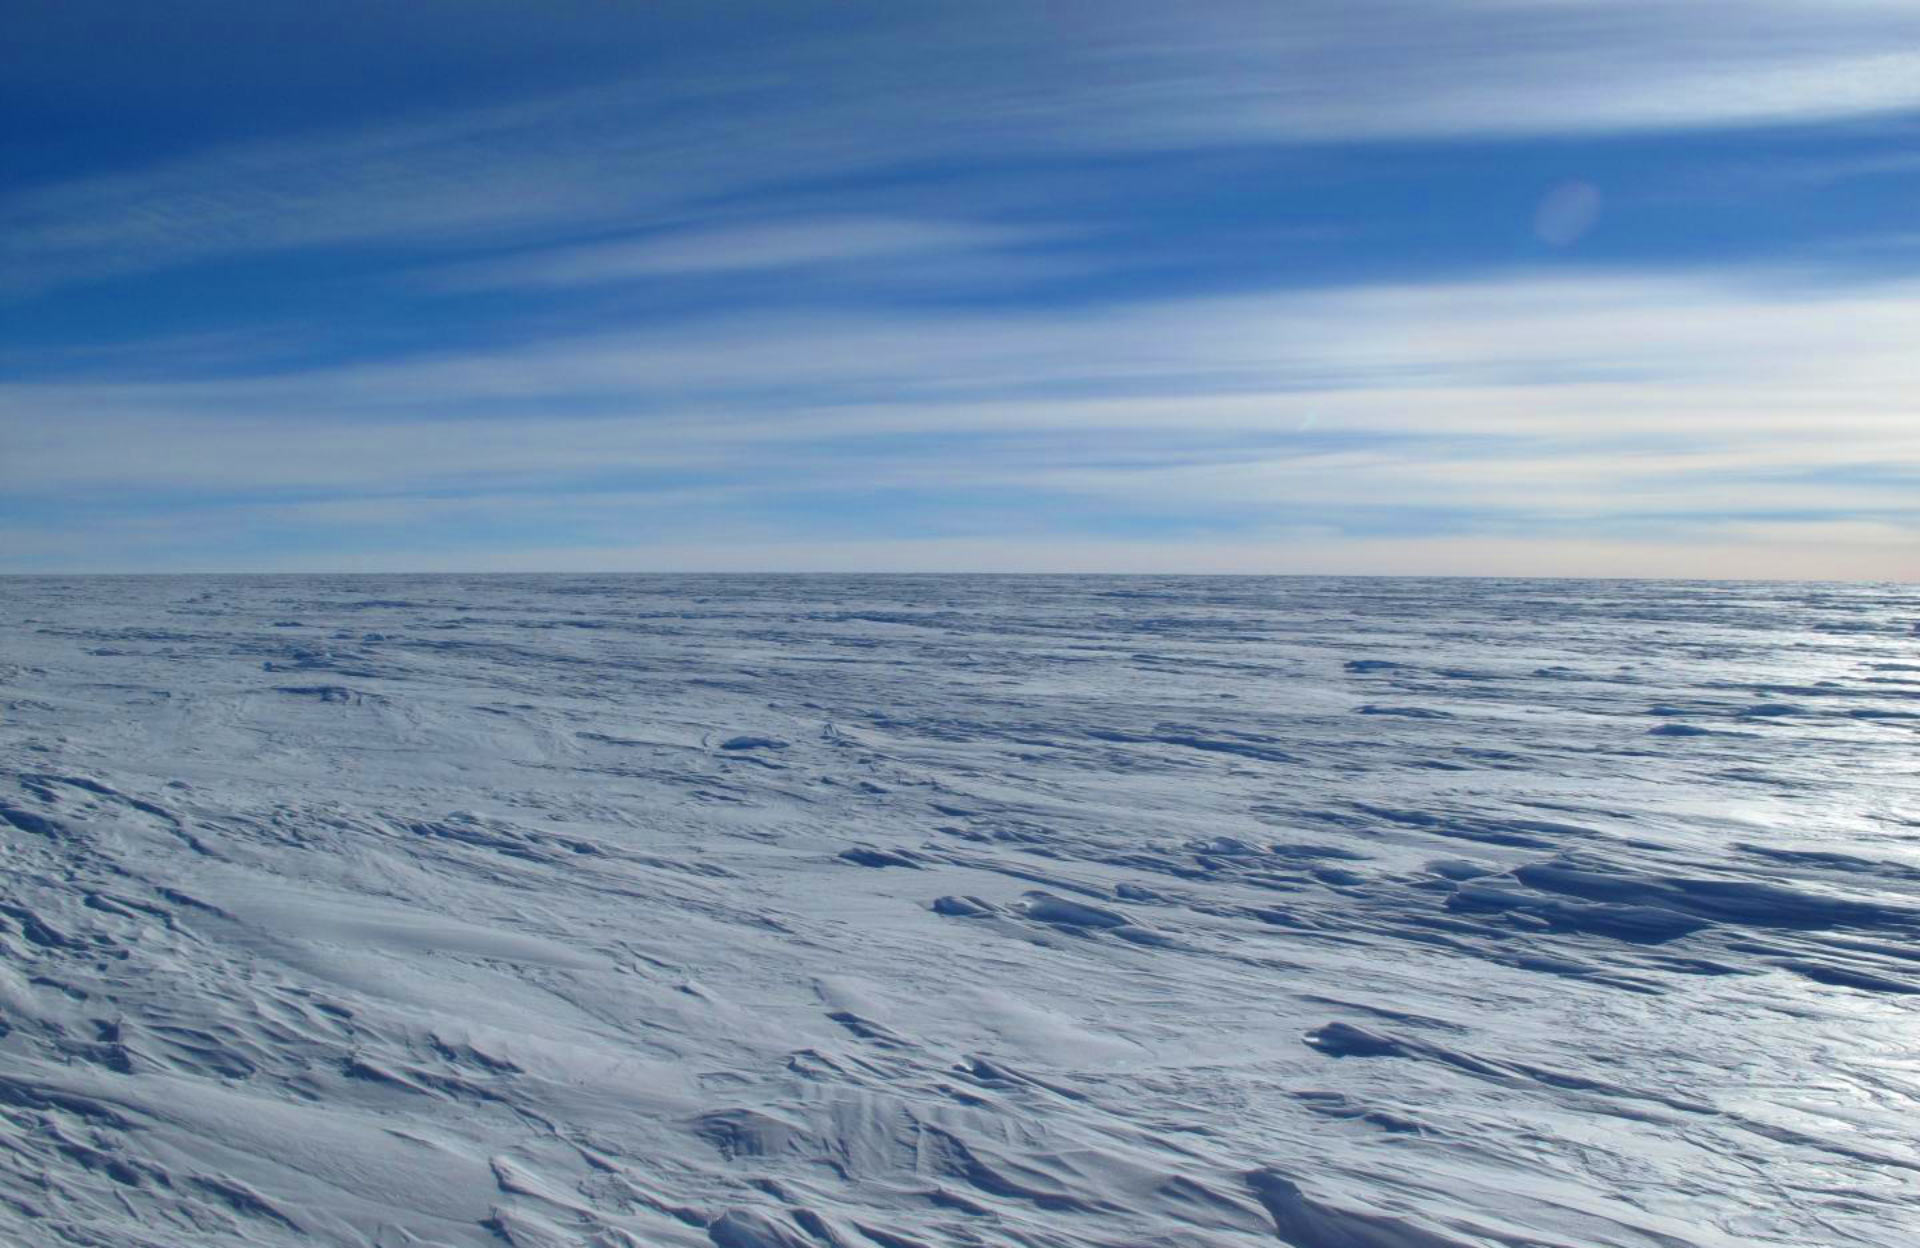 Scientists record new lowest temperature on Earth in Antarctica